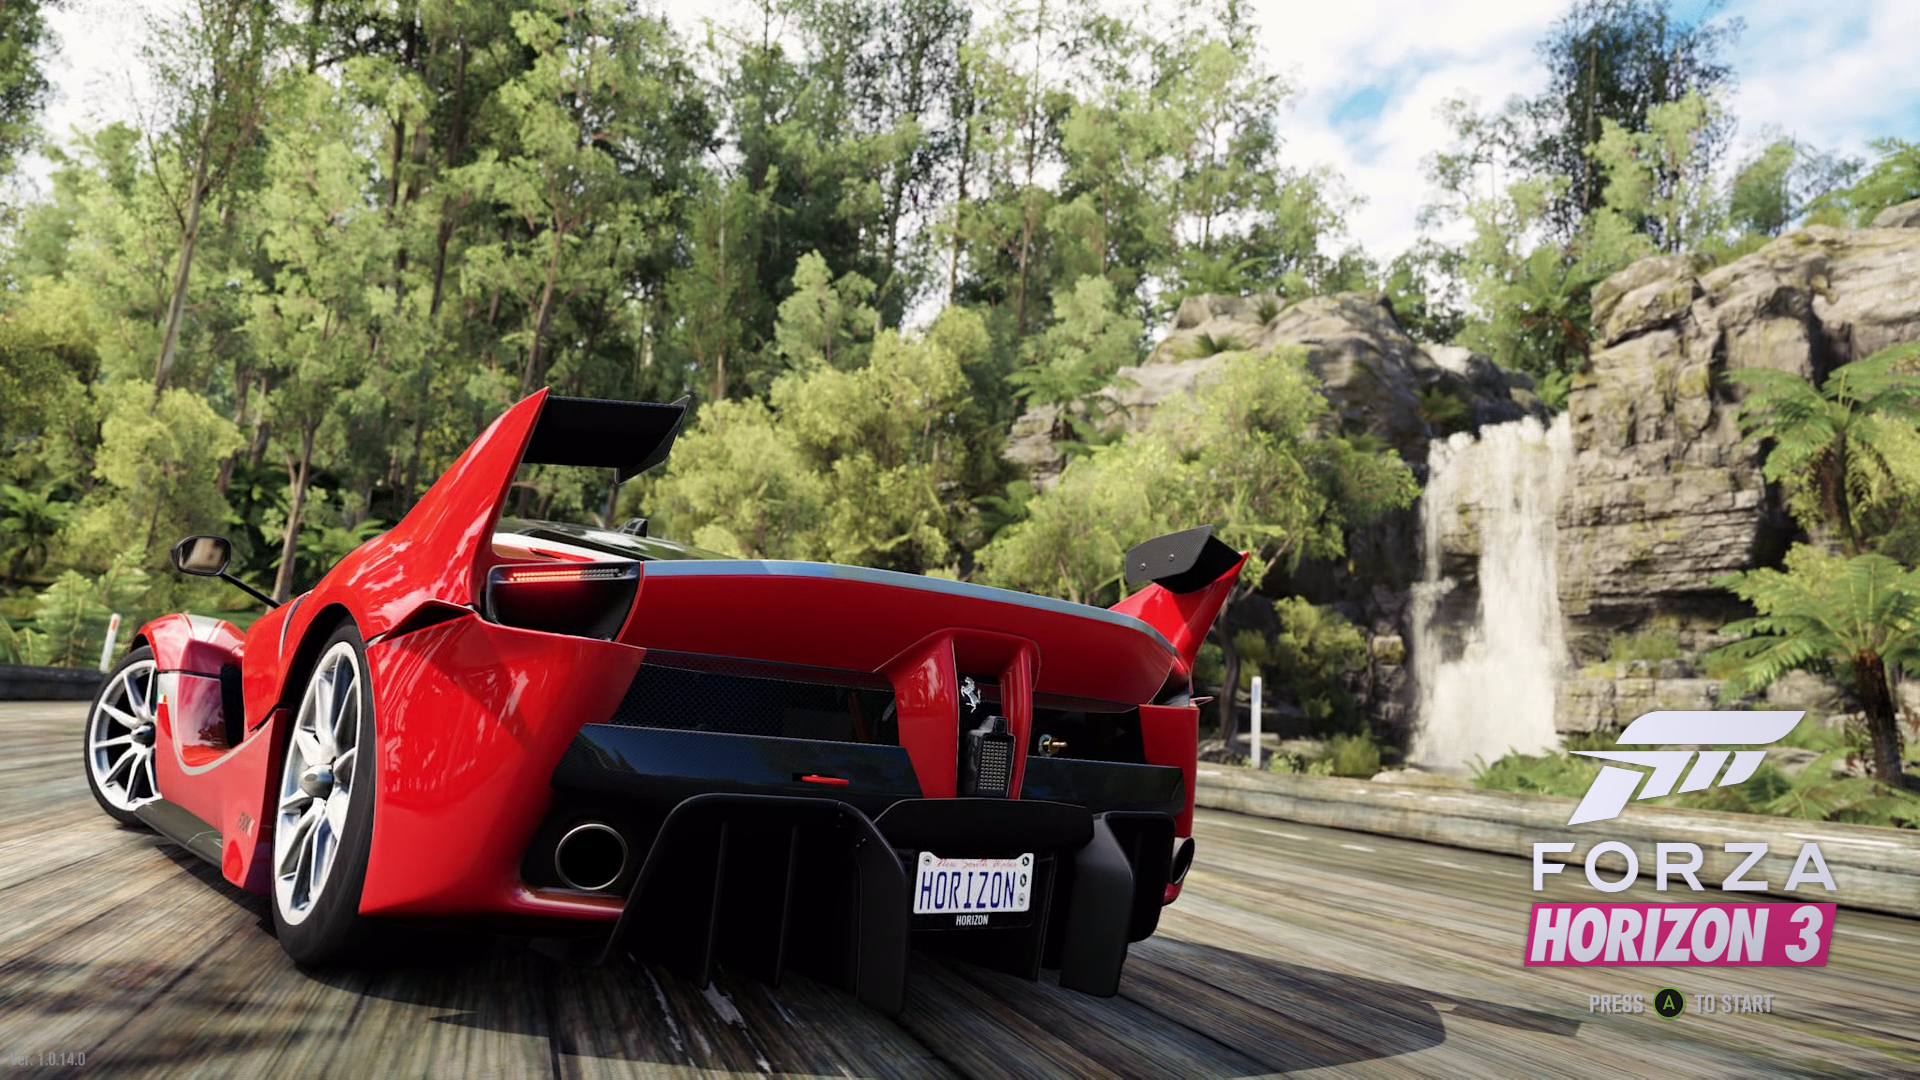 Forza Horizon 3 Background: Game Review: Forza Horizon 3: Living In A Land Down Under